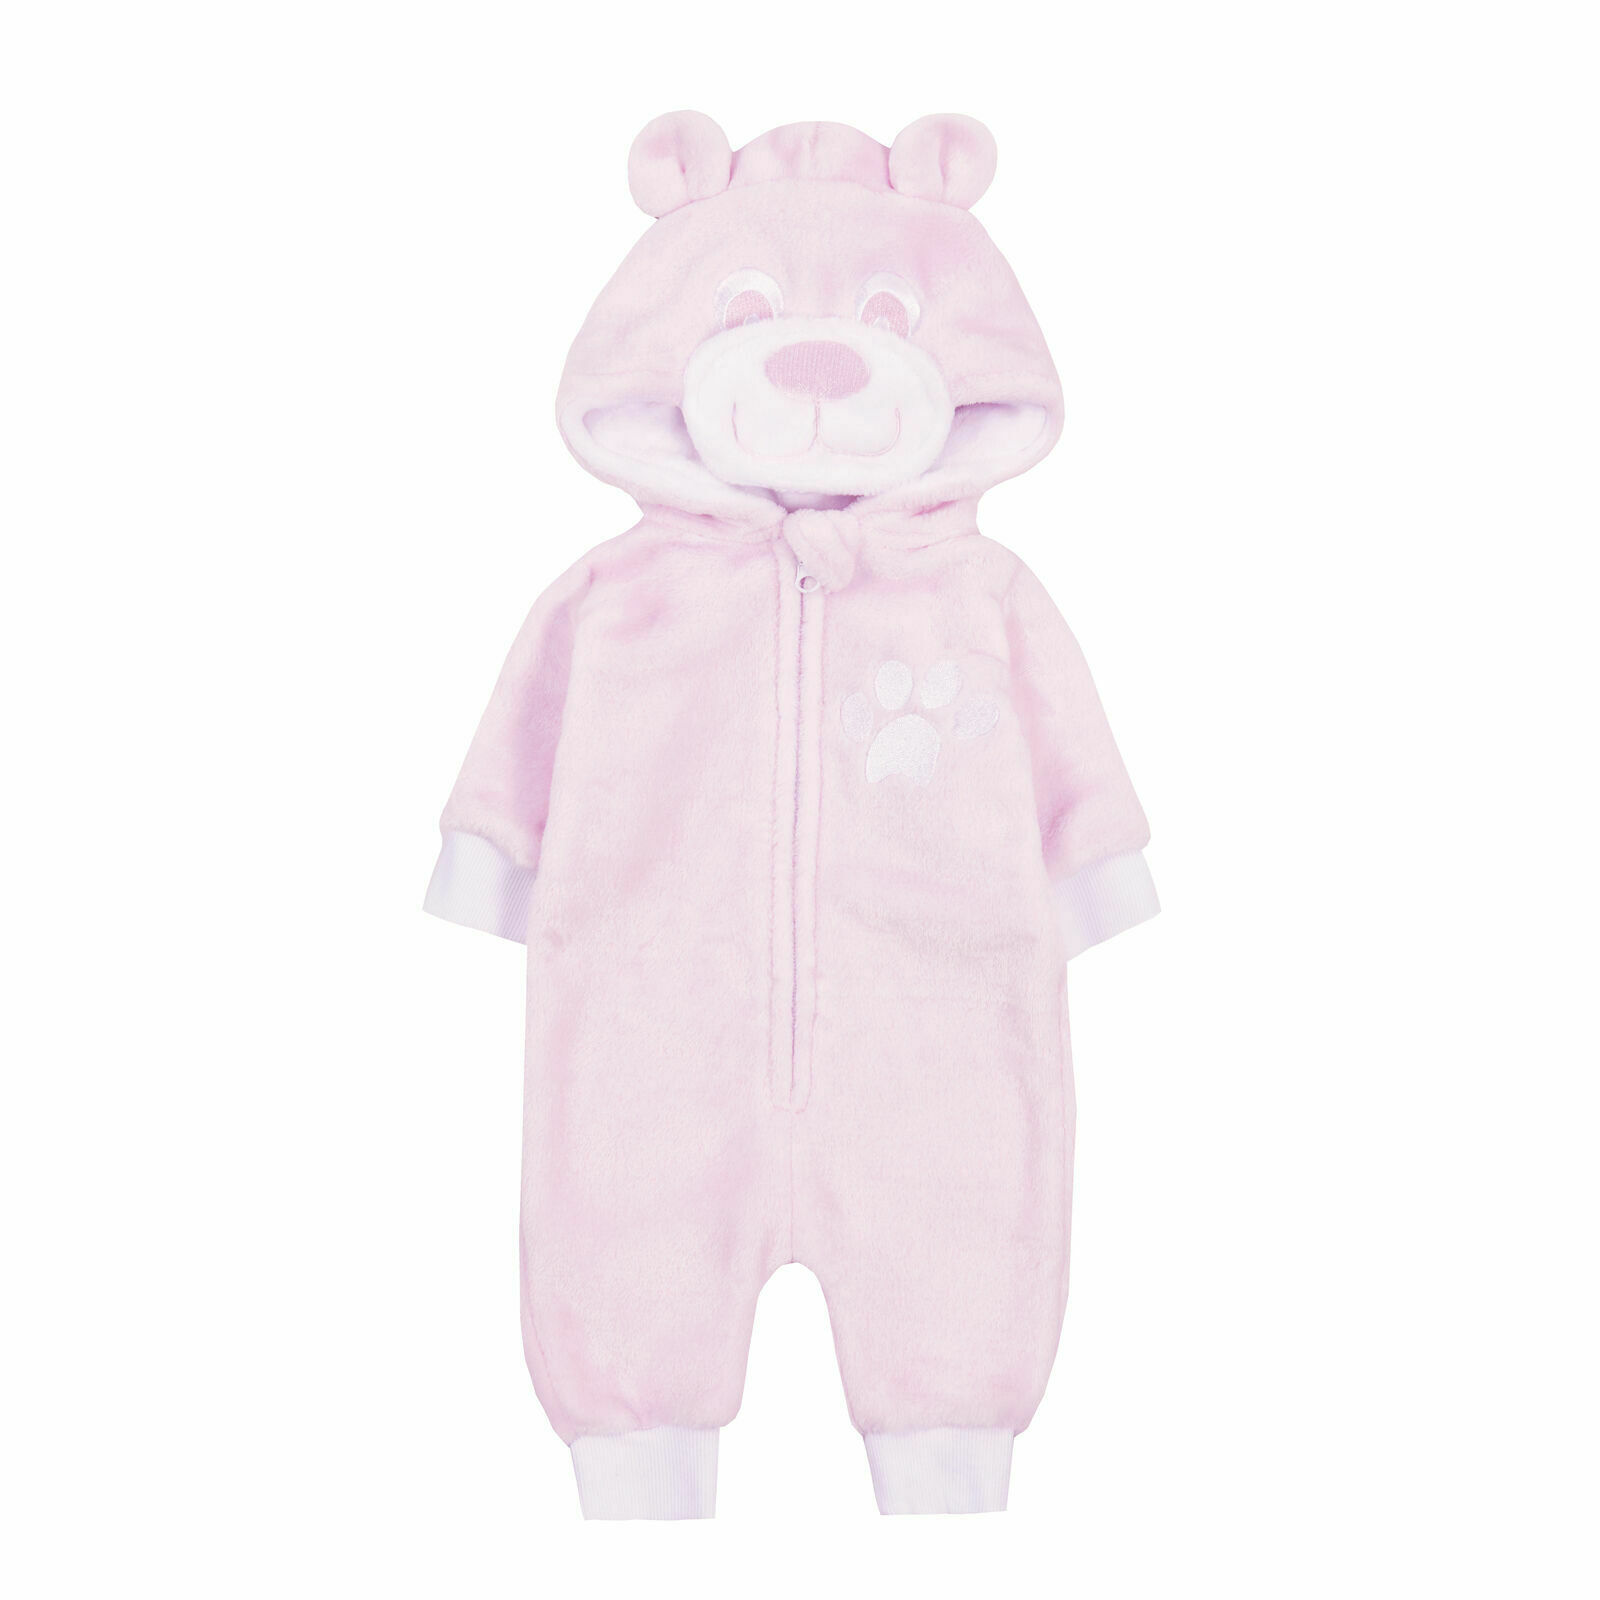 BABY992 Baby Boys//Girls So Beary Cute All In One Hooded Winter Snowsuit